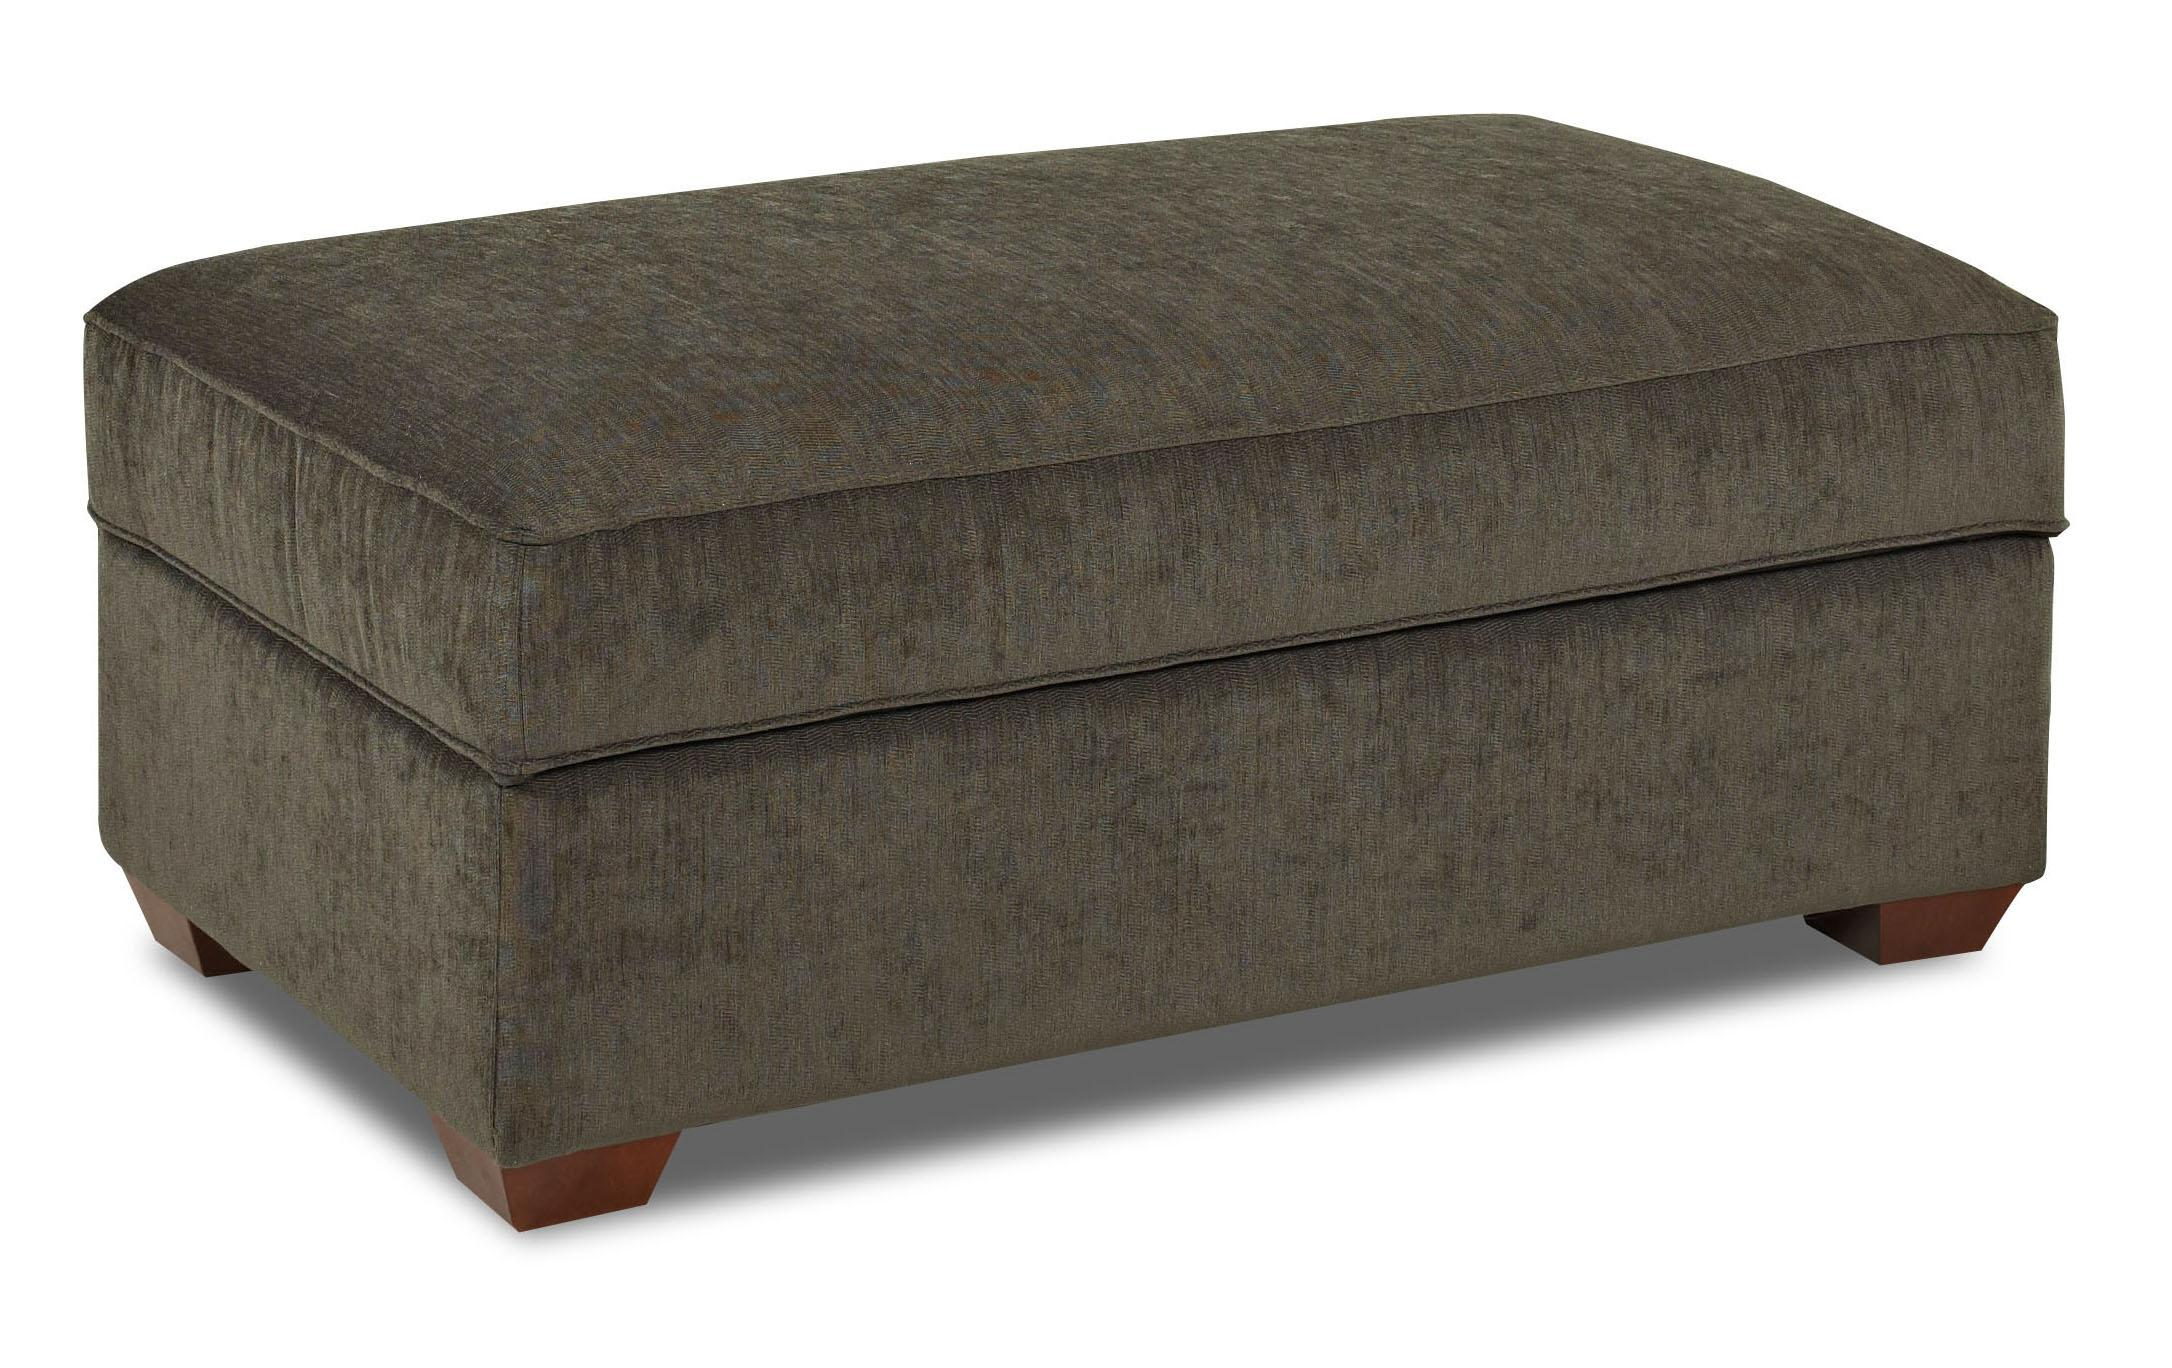 Storage Cocktail Ottoman with Exposed Wood Feet